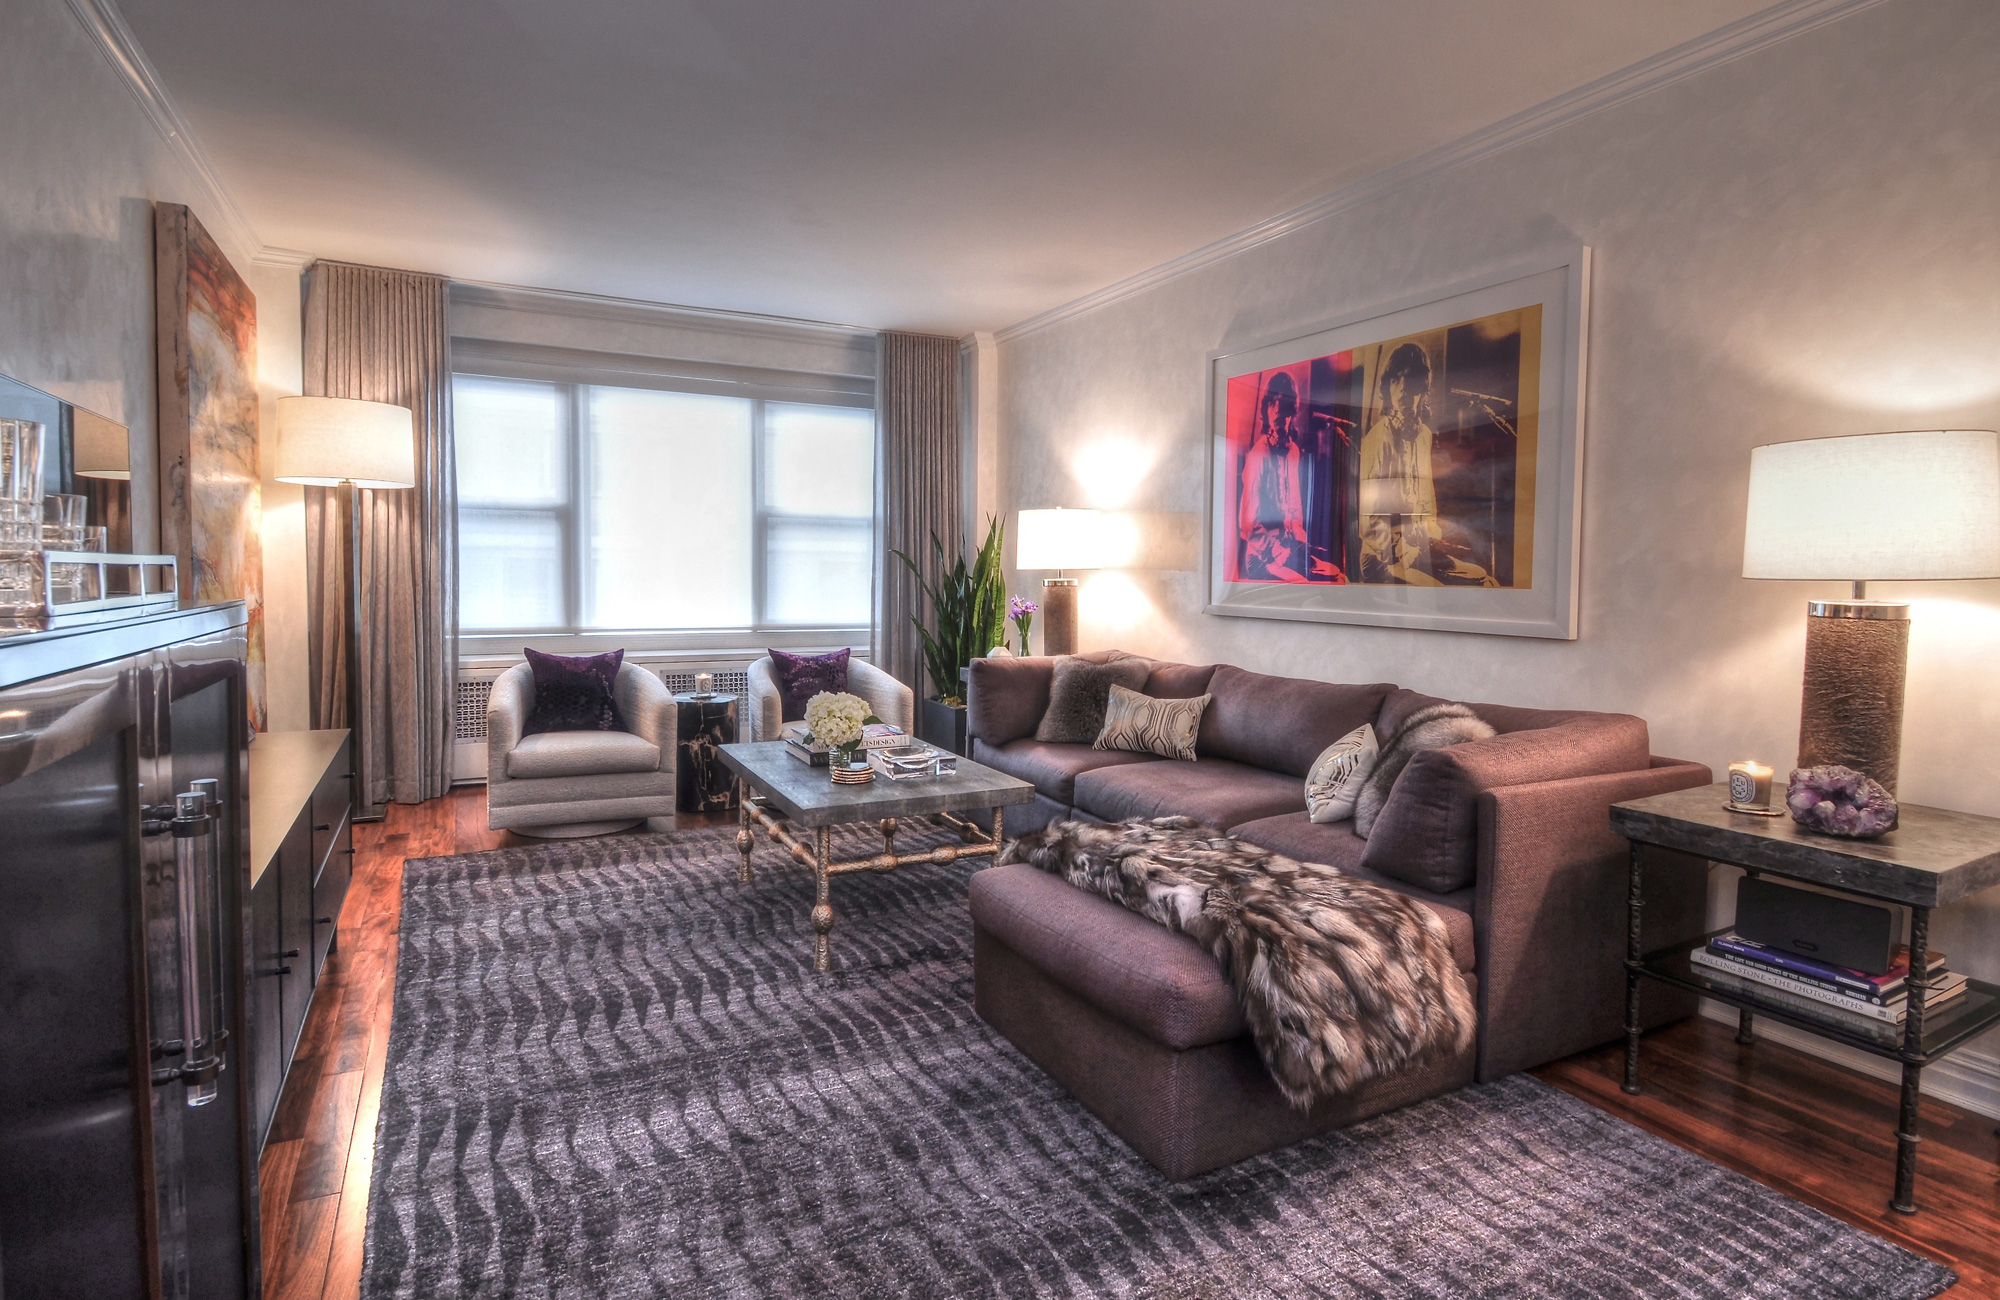 Turtle Bay Apartment, New York City - Design by B.A. Torrey